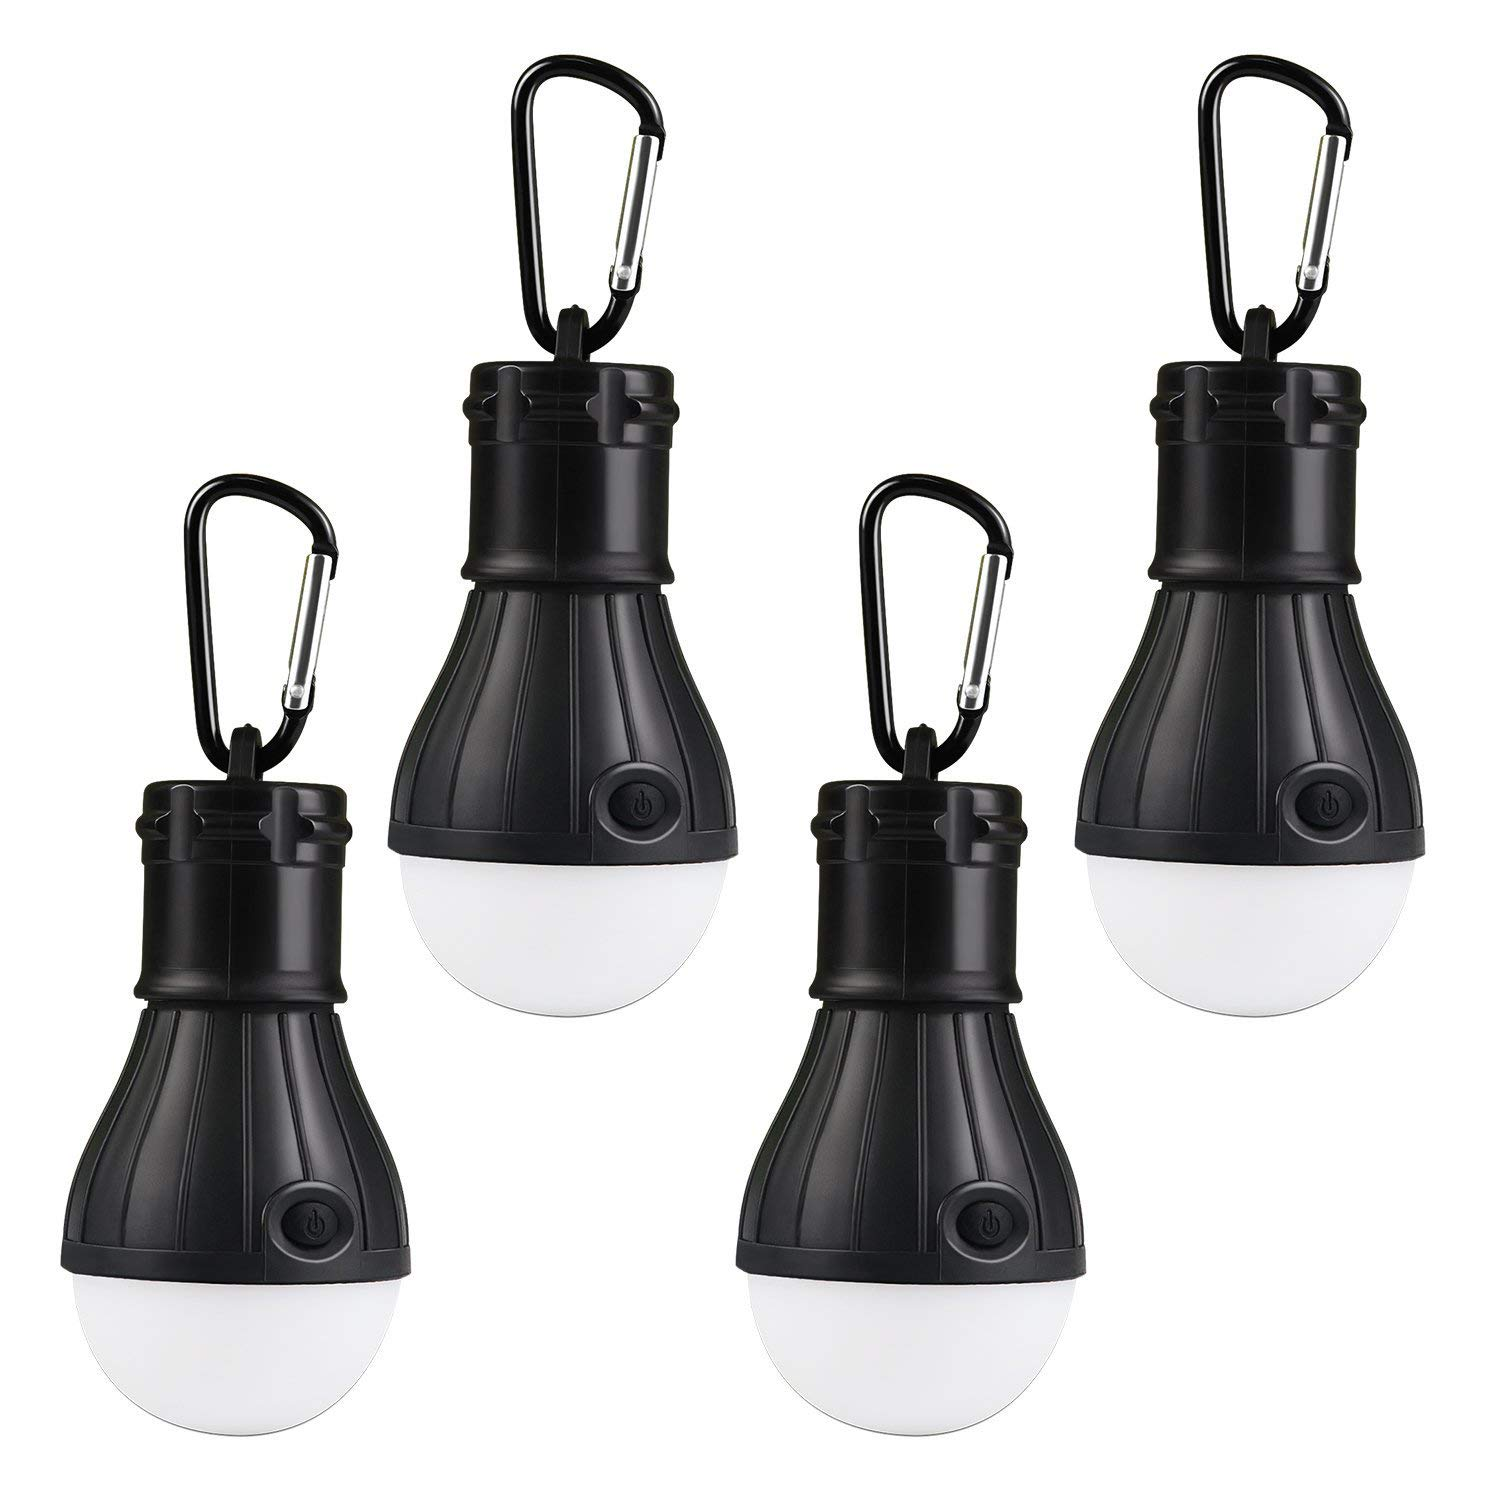 LED Camping Light, Lenpow Portable Tent Lantern 4 Modes Emergency Lamp Bulb,Bug Out Bag Equipment for Outdoor Activities Backpacking Hurricane Snowstorm Outage, Water Resistant Night light, 2 Pack